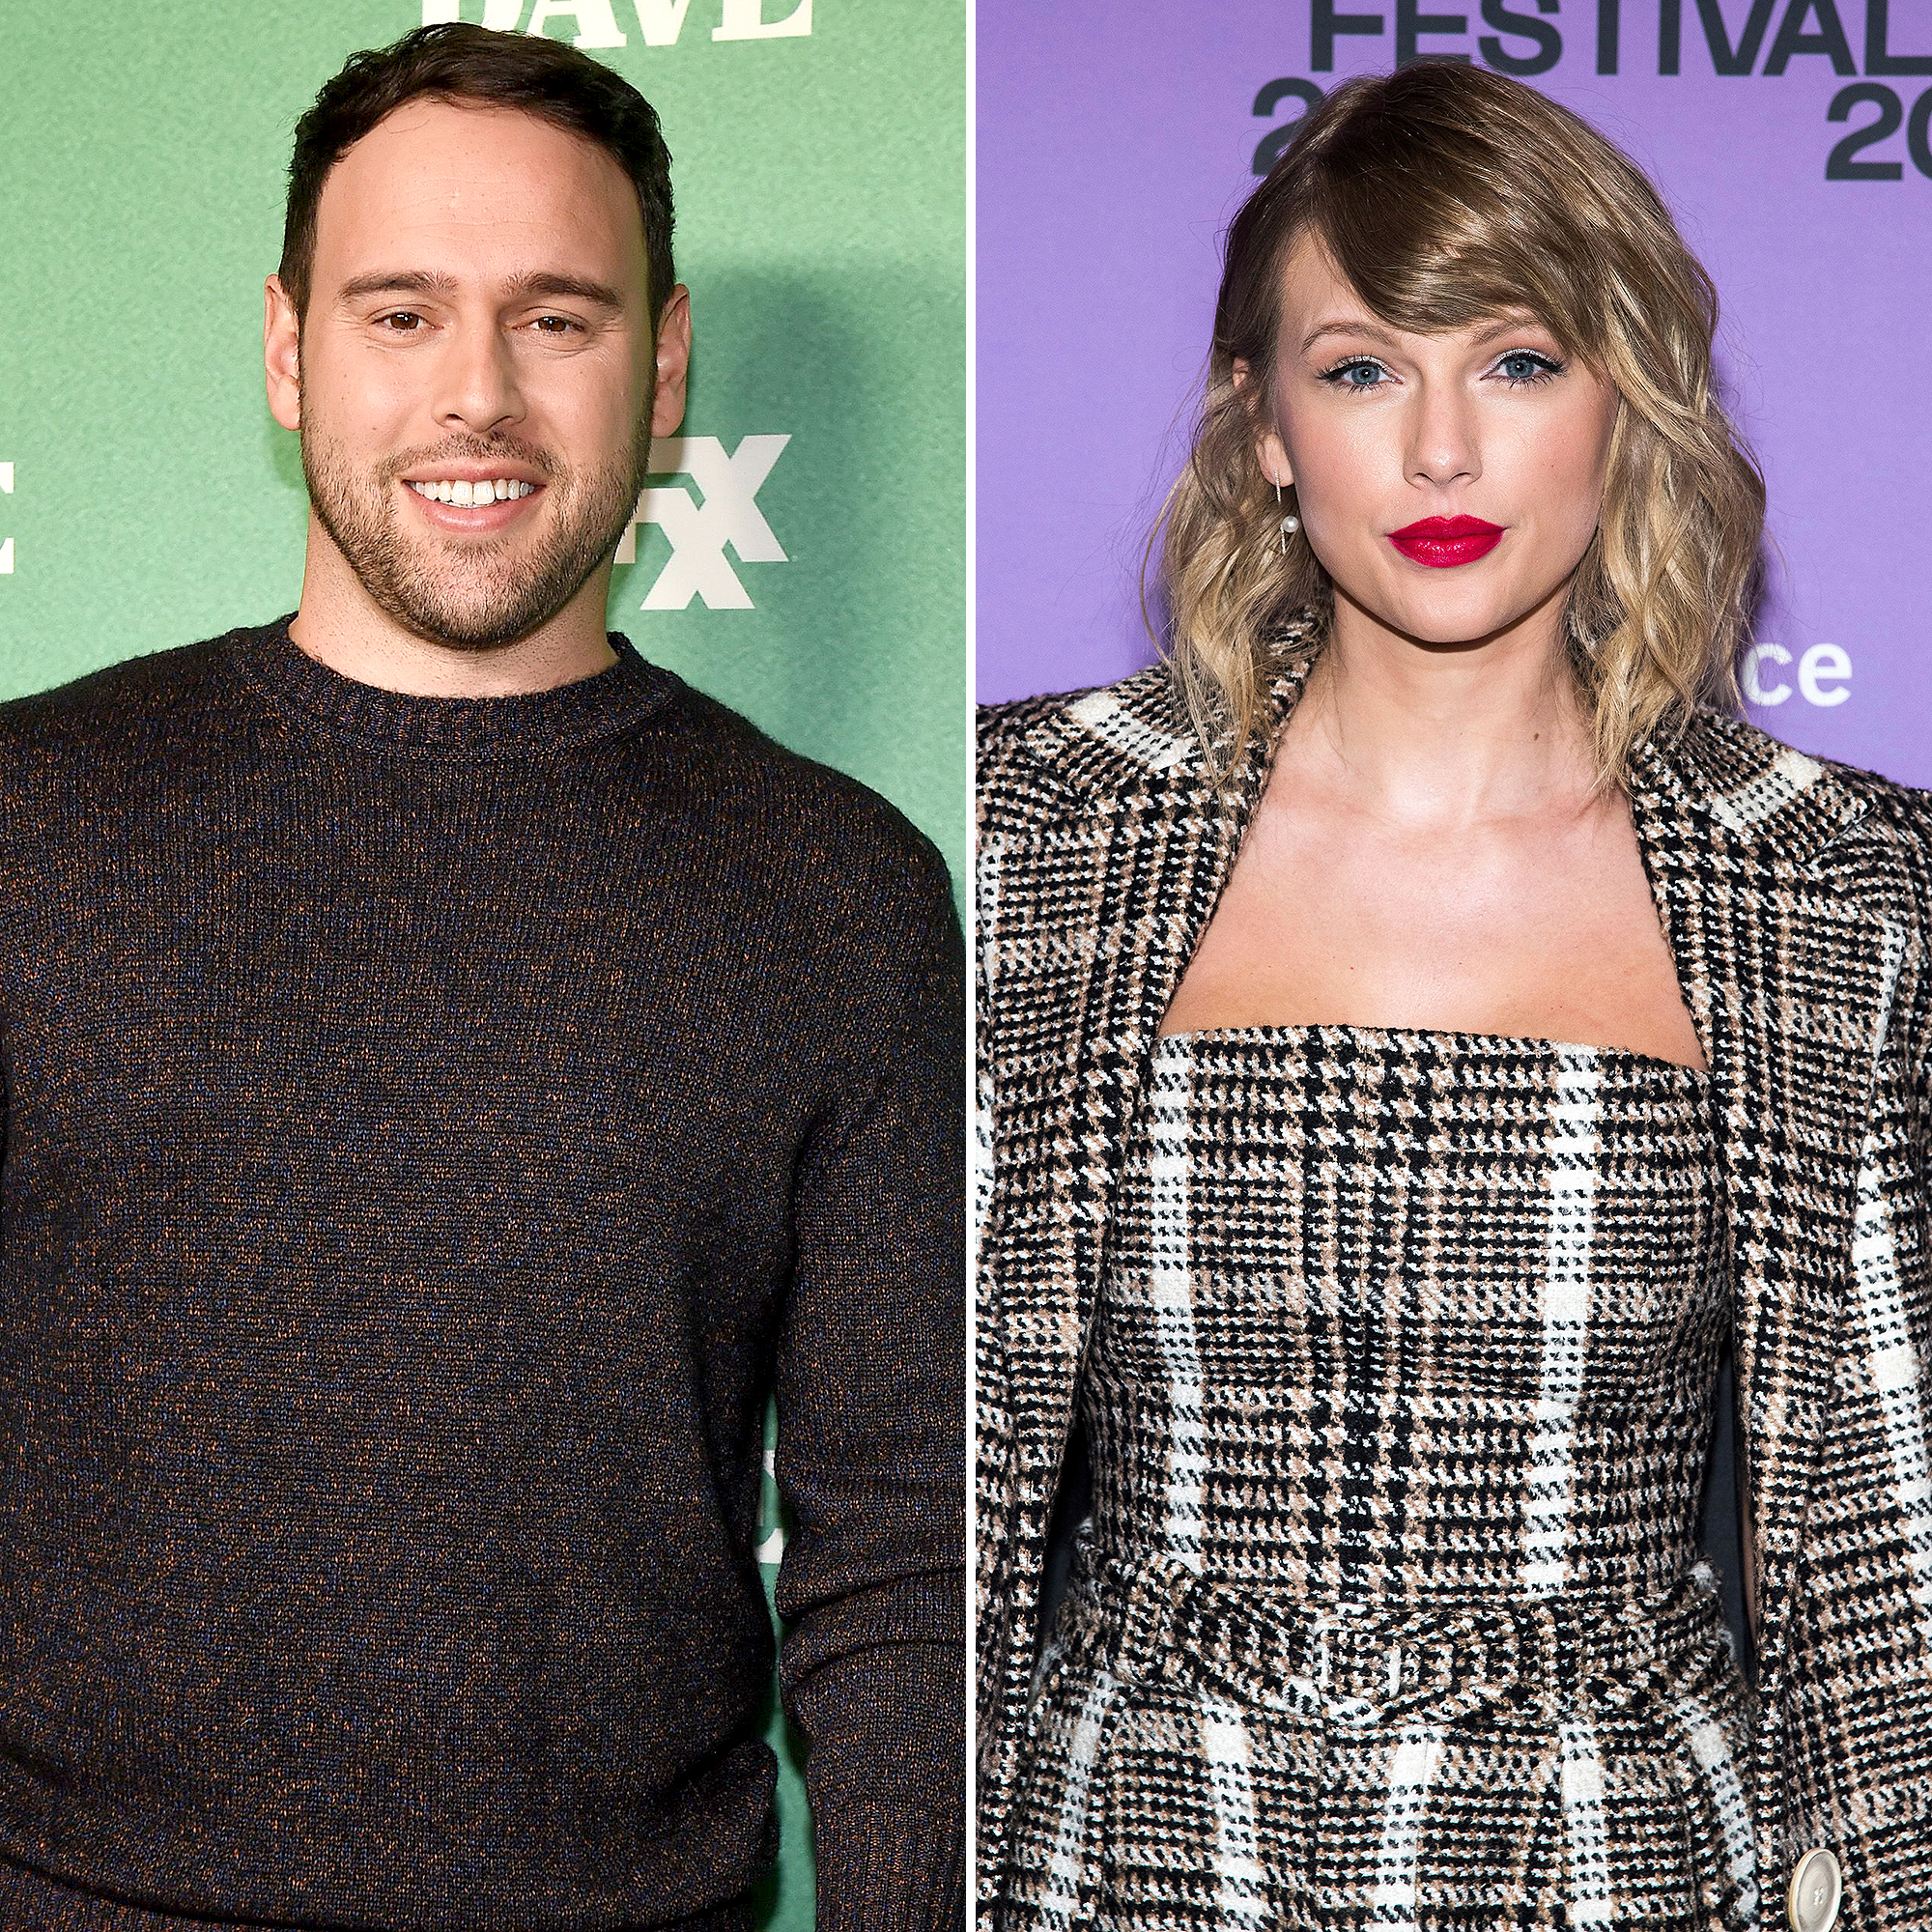 Everything We Know About Taylor Swift's Battle With Big Machine Records